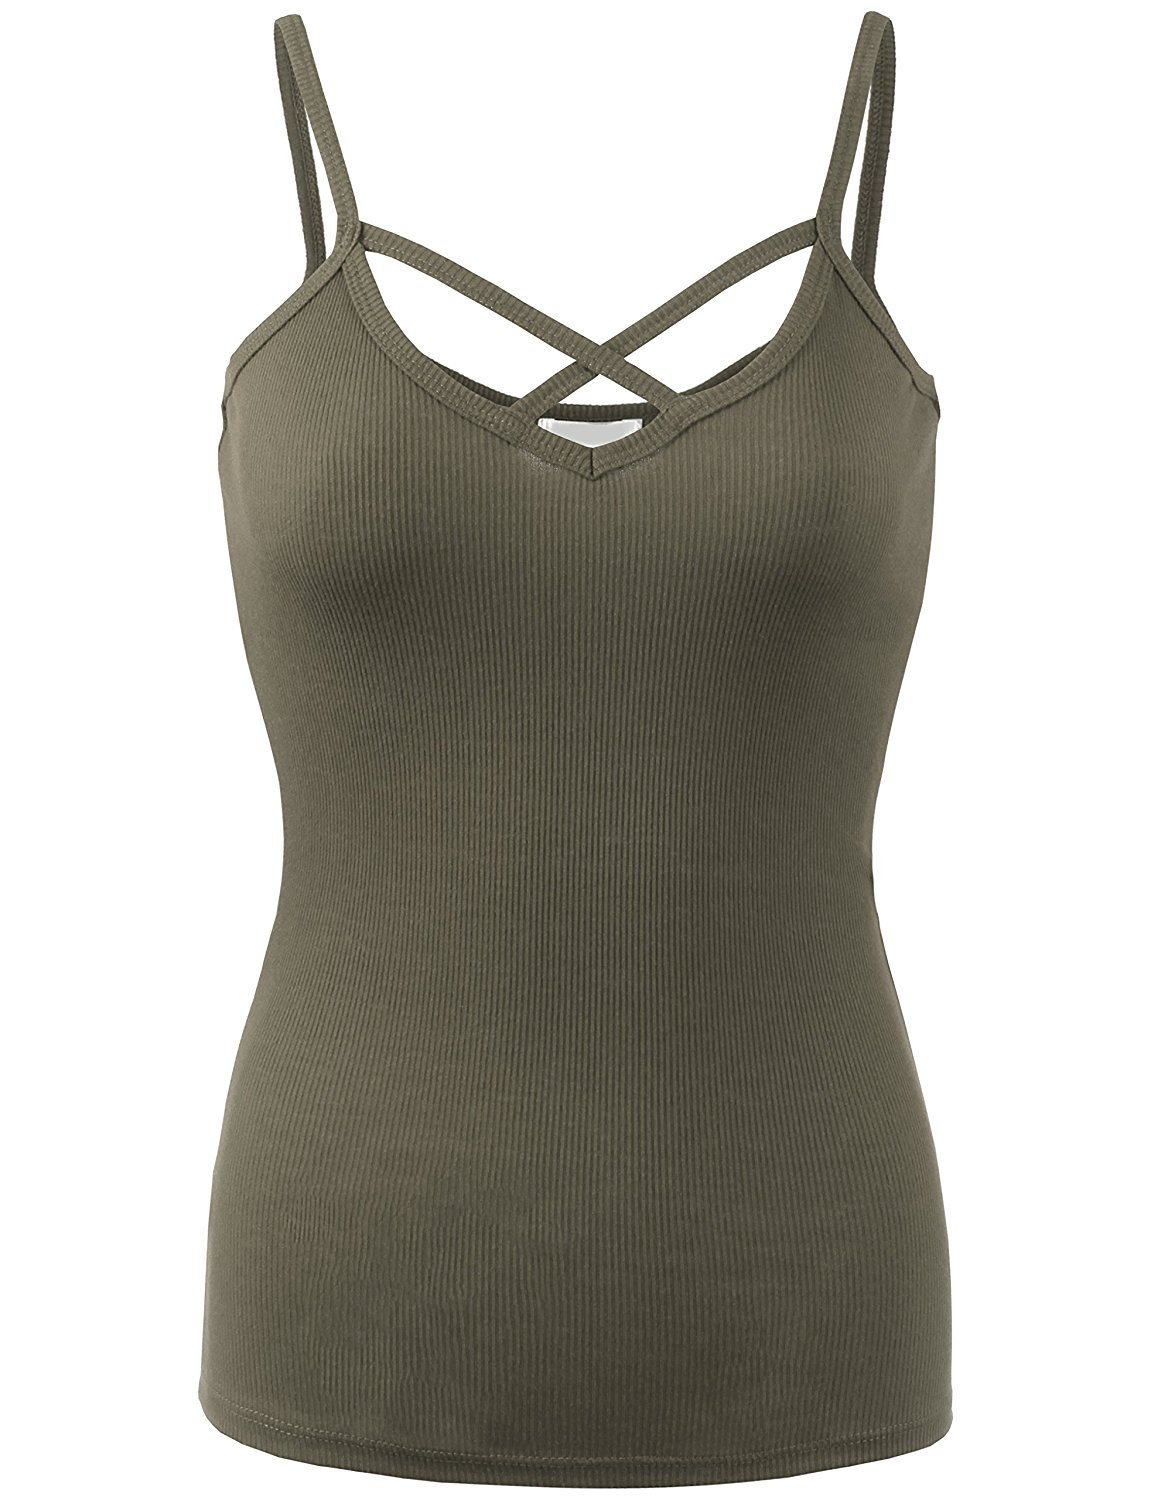 BABY-QQ Comfortable Womens Solid Ribbed Crisscross Cami Top-M-MILITARY Doubldowt469_militaryMedium